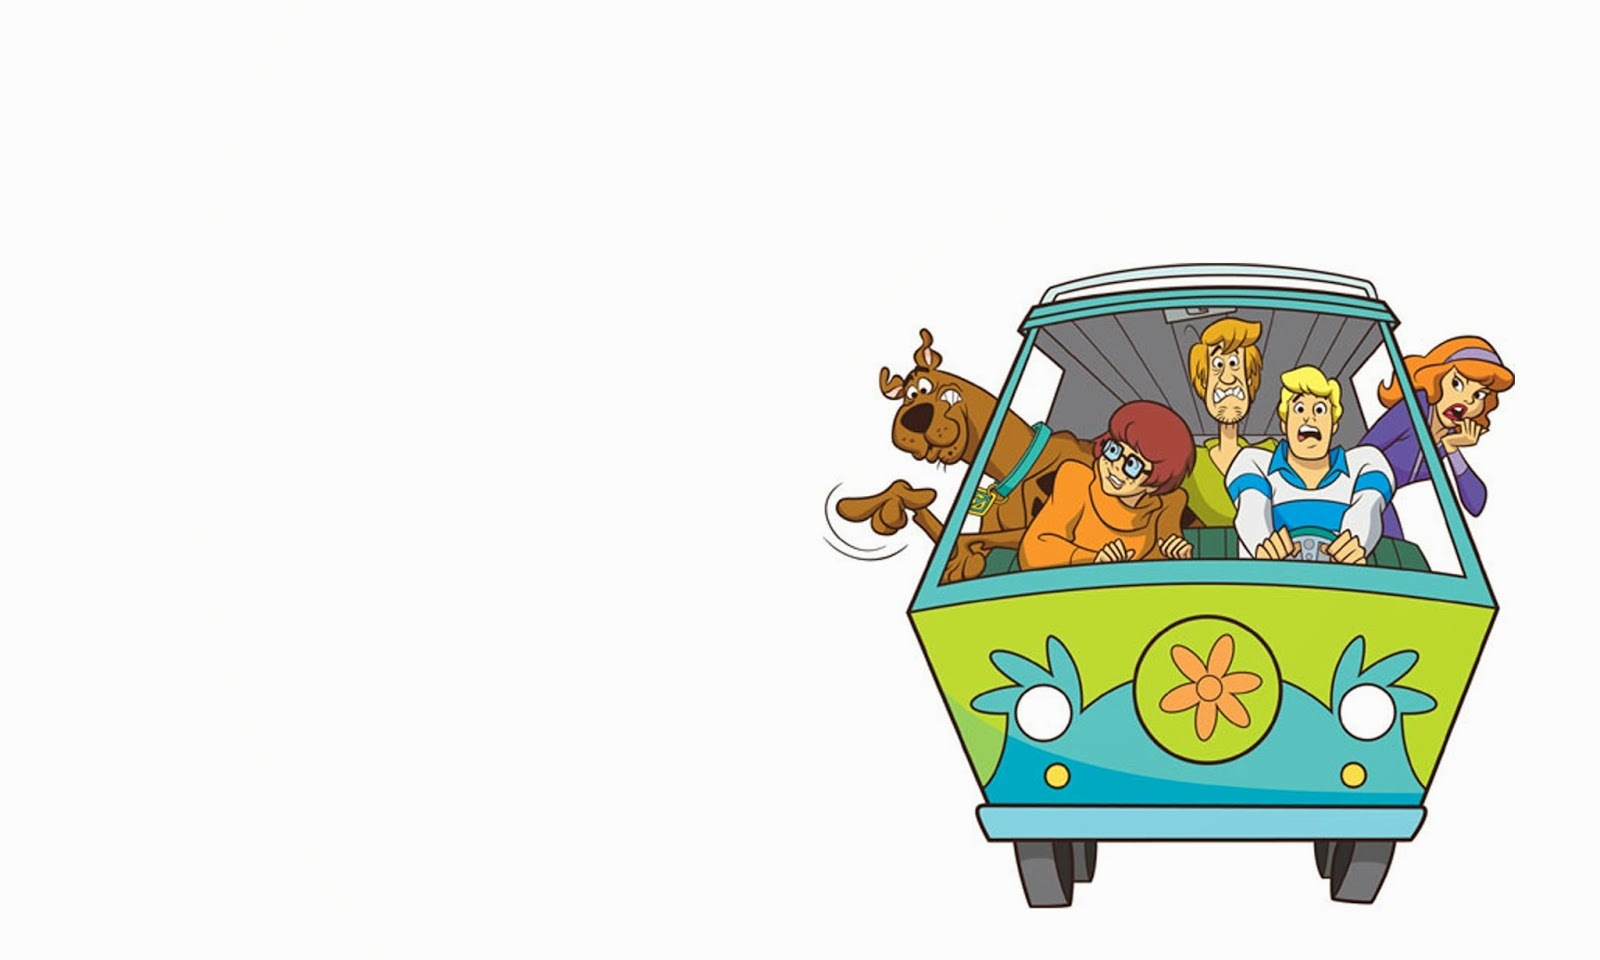 Scooby Doo HD Wallpapers 1080p | HD Wallpapers (High Definition ...